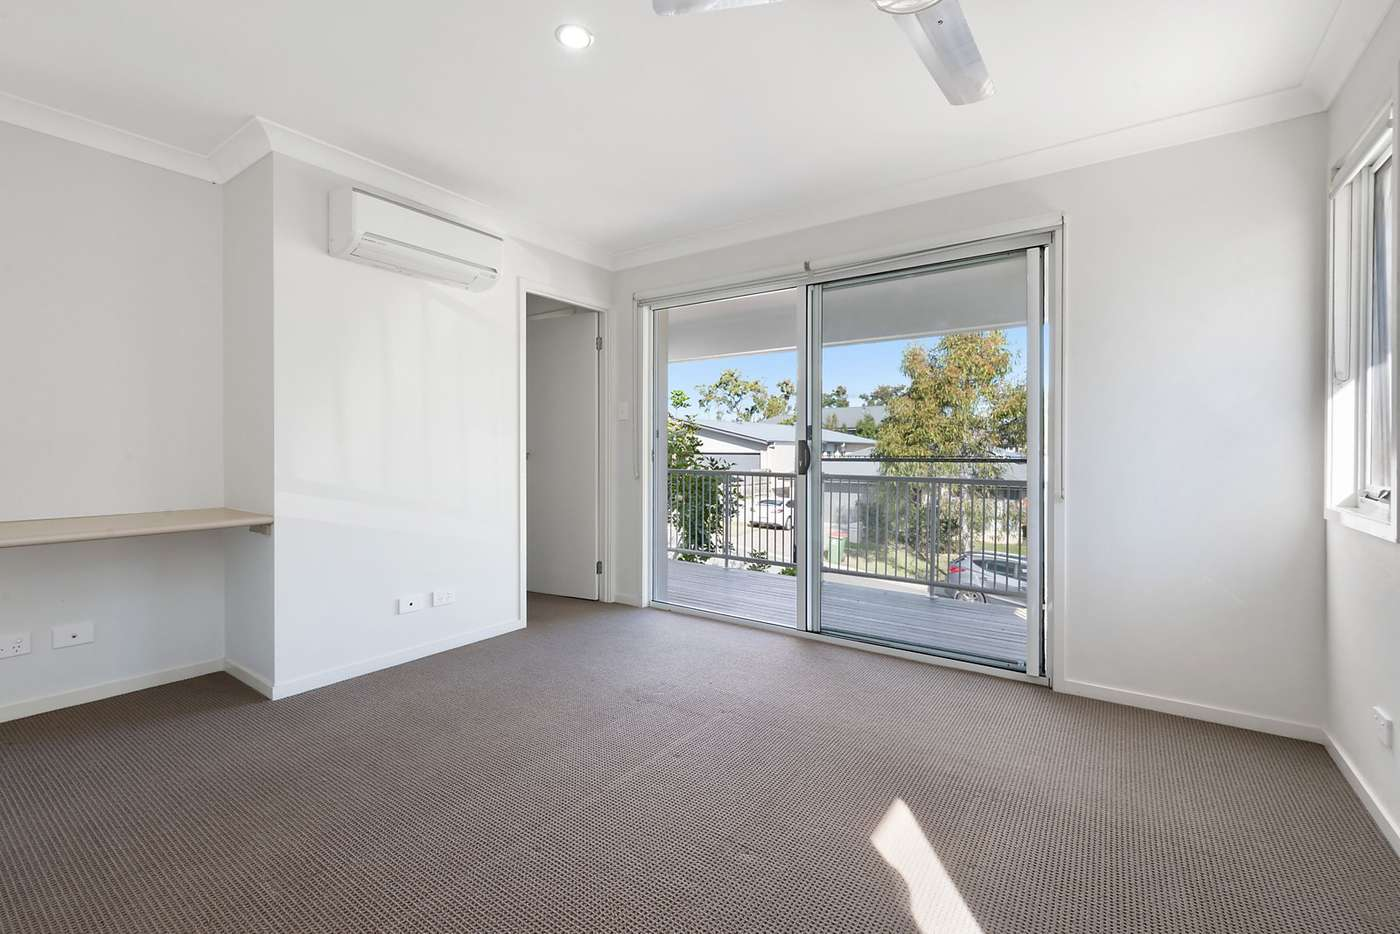 Fifth view of Homely house listing, 79 Willow Rise Drive, Waterford QLD 4133